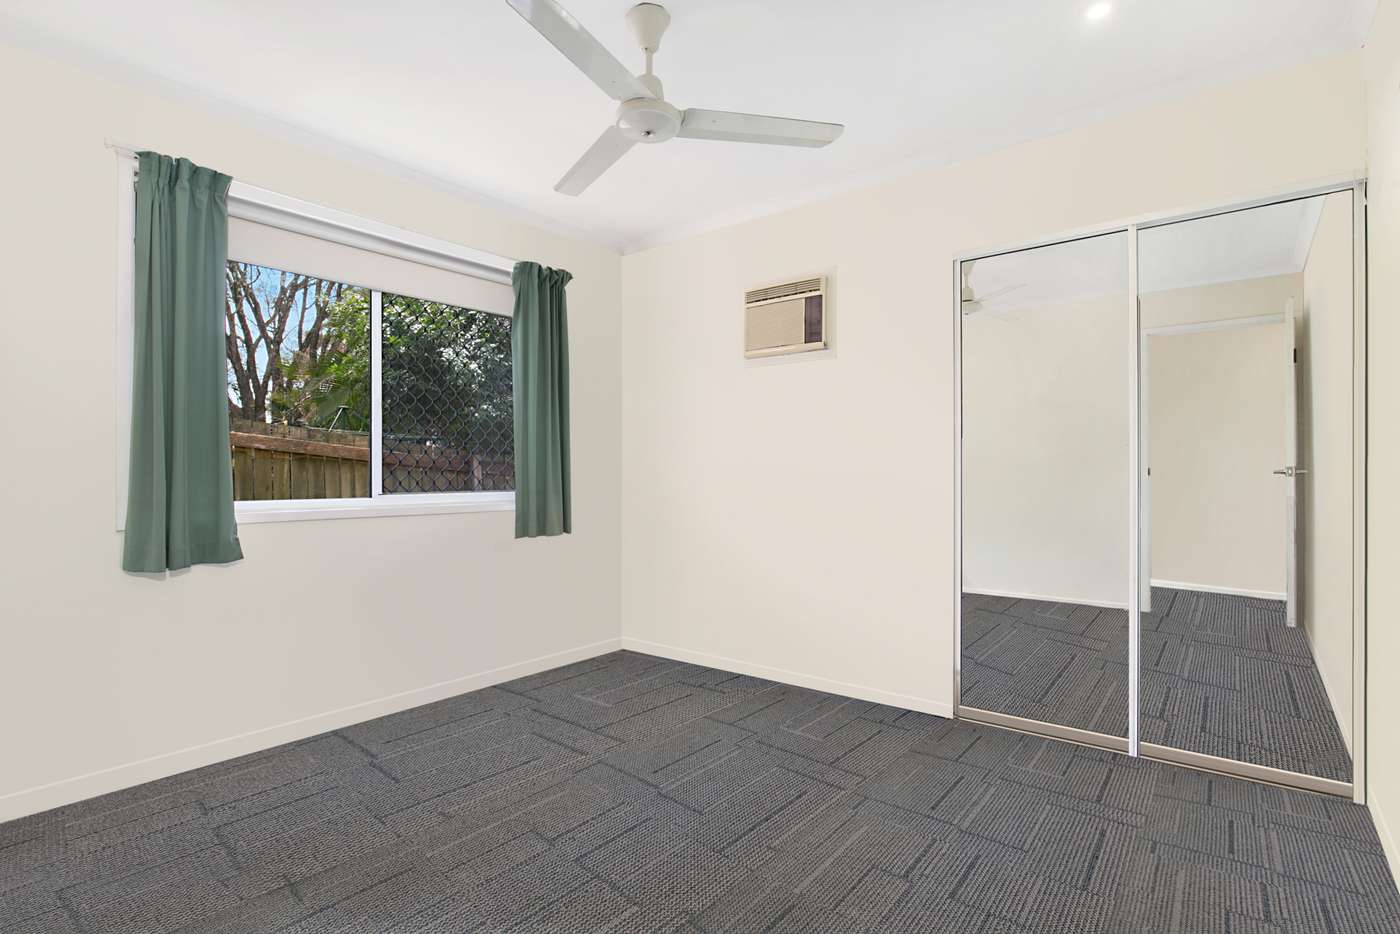 Seventh view of Homely house listing, 4 Gregwal Ct, Oxley QLD 4075